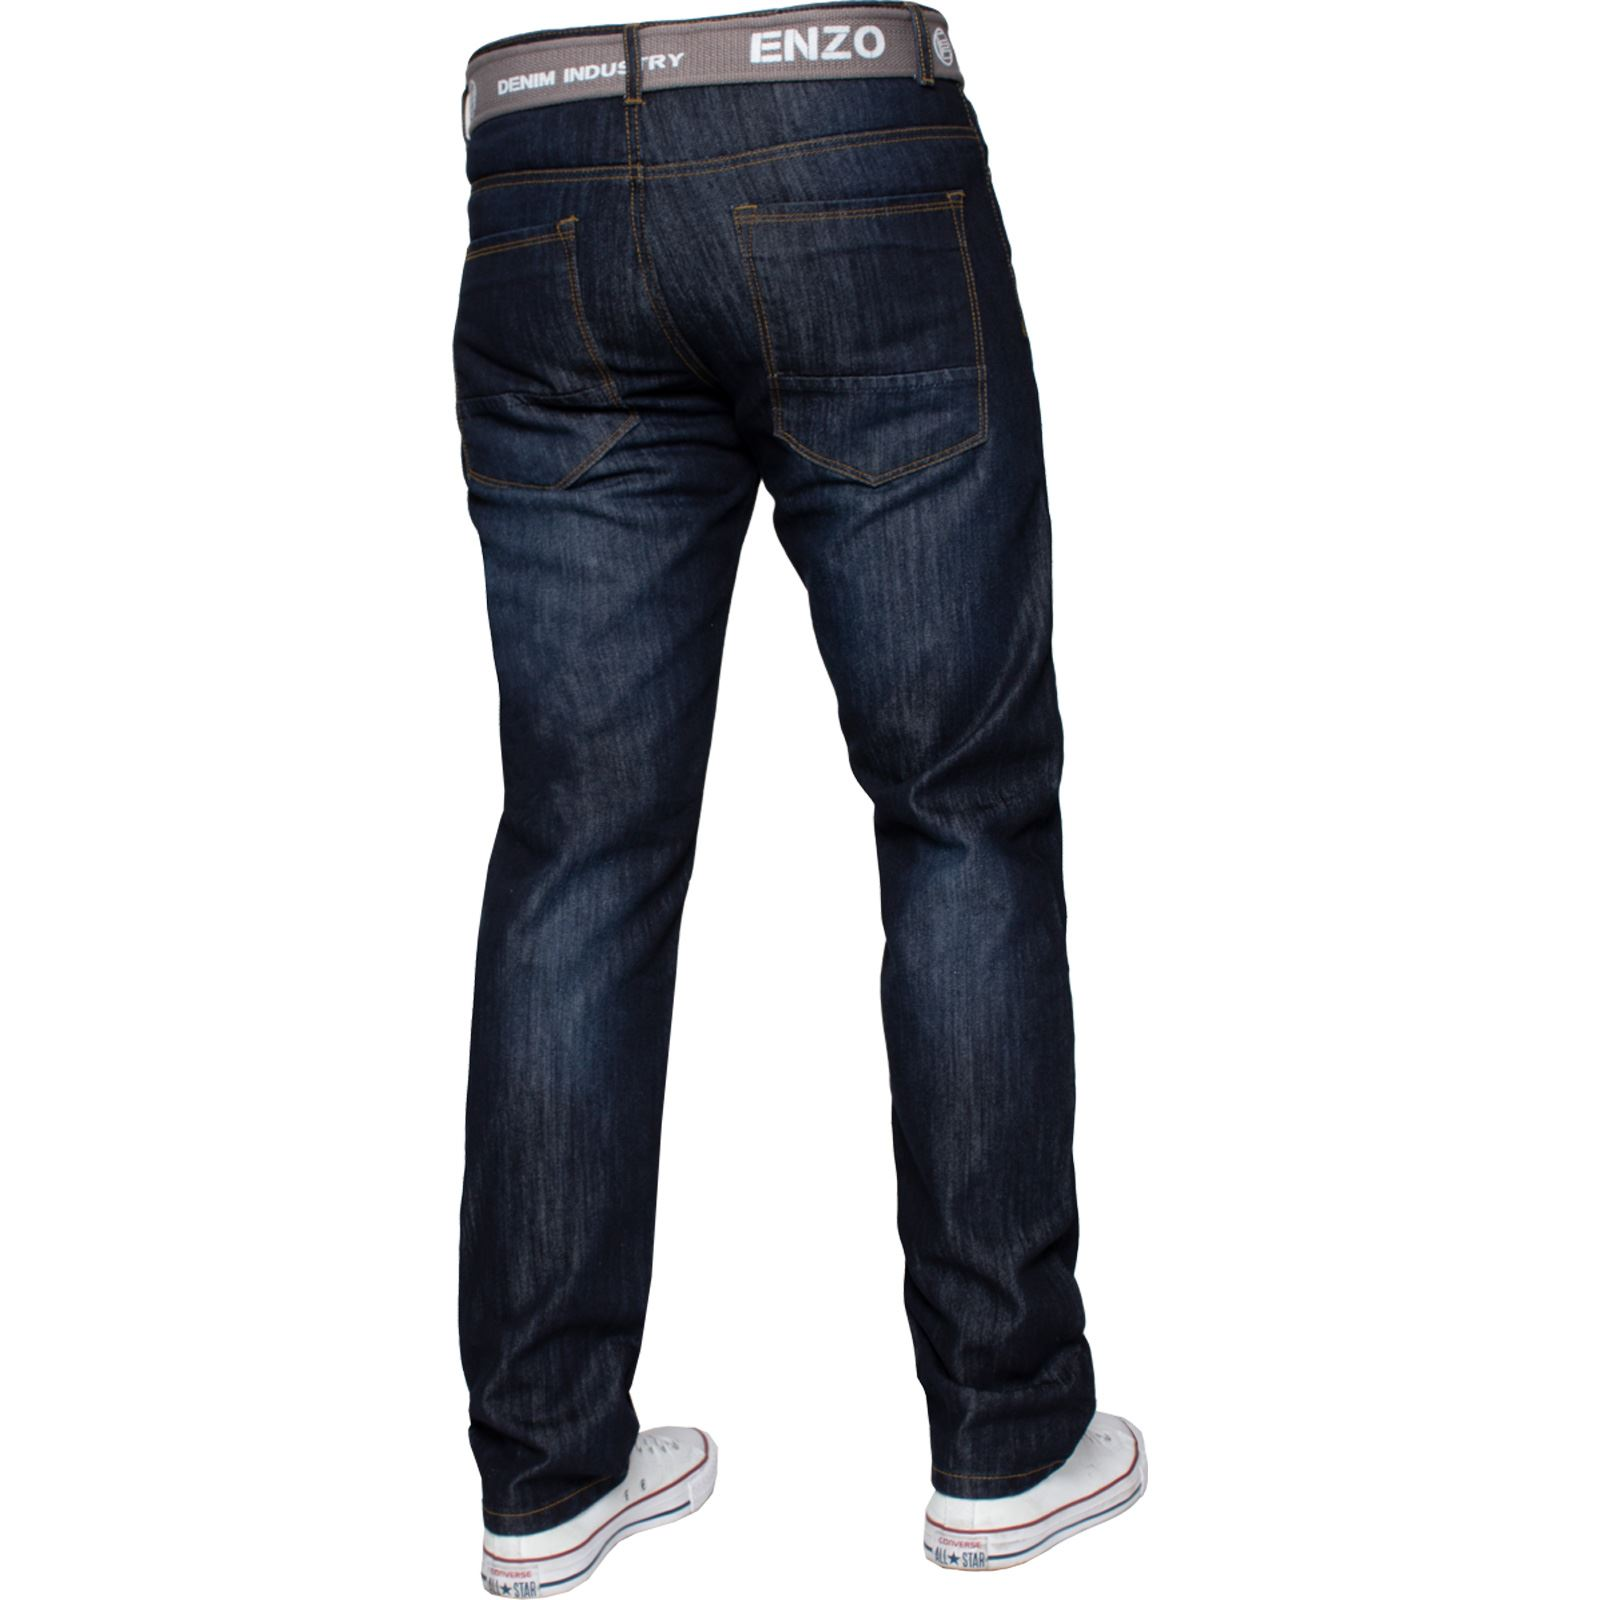 Enzo-Mens-Designer-Jeans-Regular-Fit-Denim-Pants-Big-Tall-All-Waist-Sizes thumbnail 13